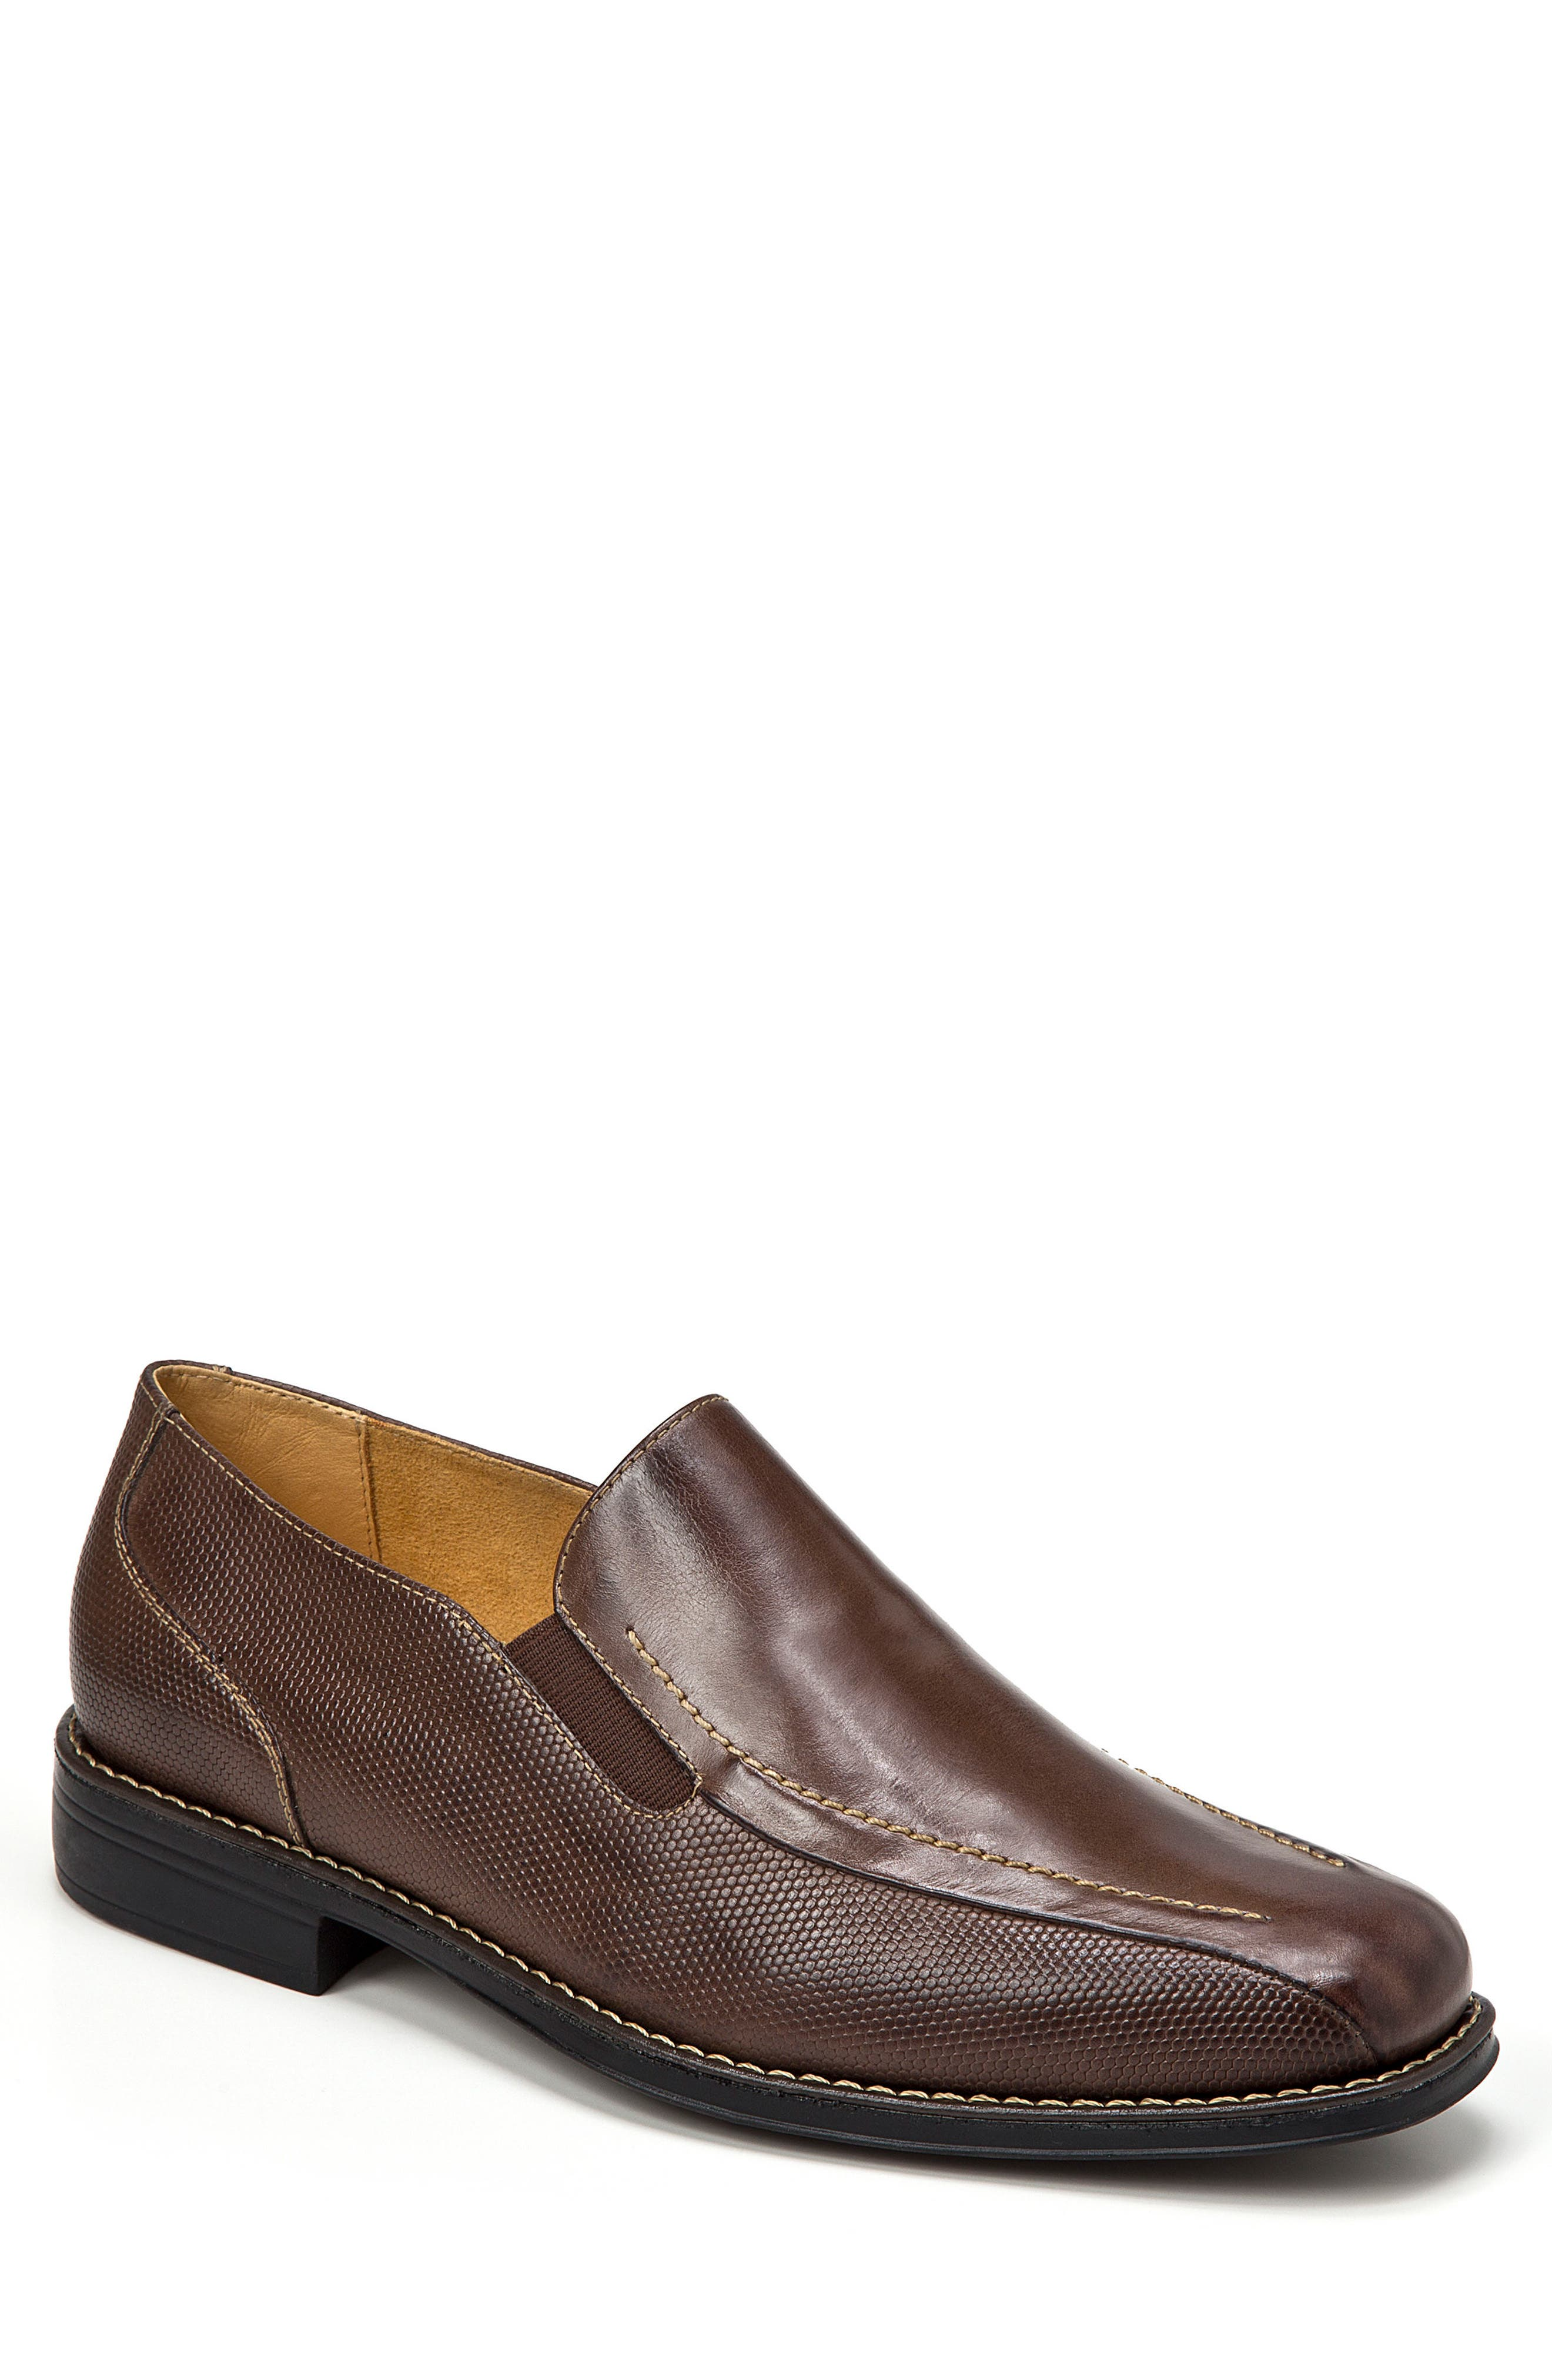 Alternate Image 1 Selected - Sandro Moscoloni Enzo Venetian Loafer (Men)